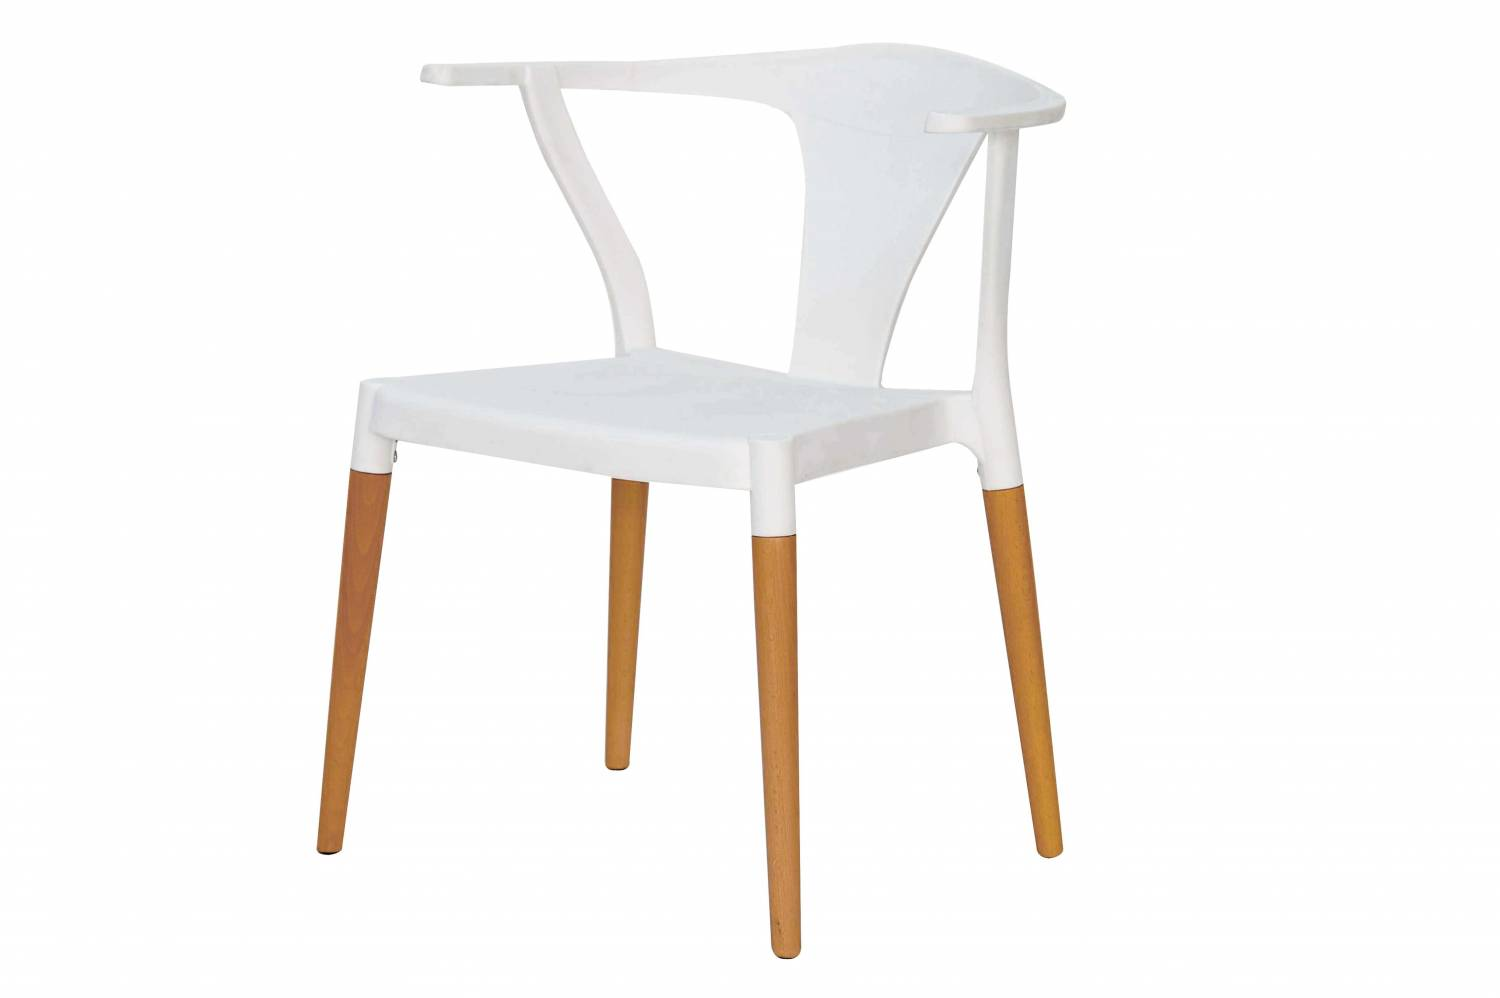 Makenna solid wood dining chair by AC Pacific.